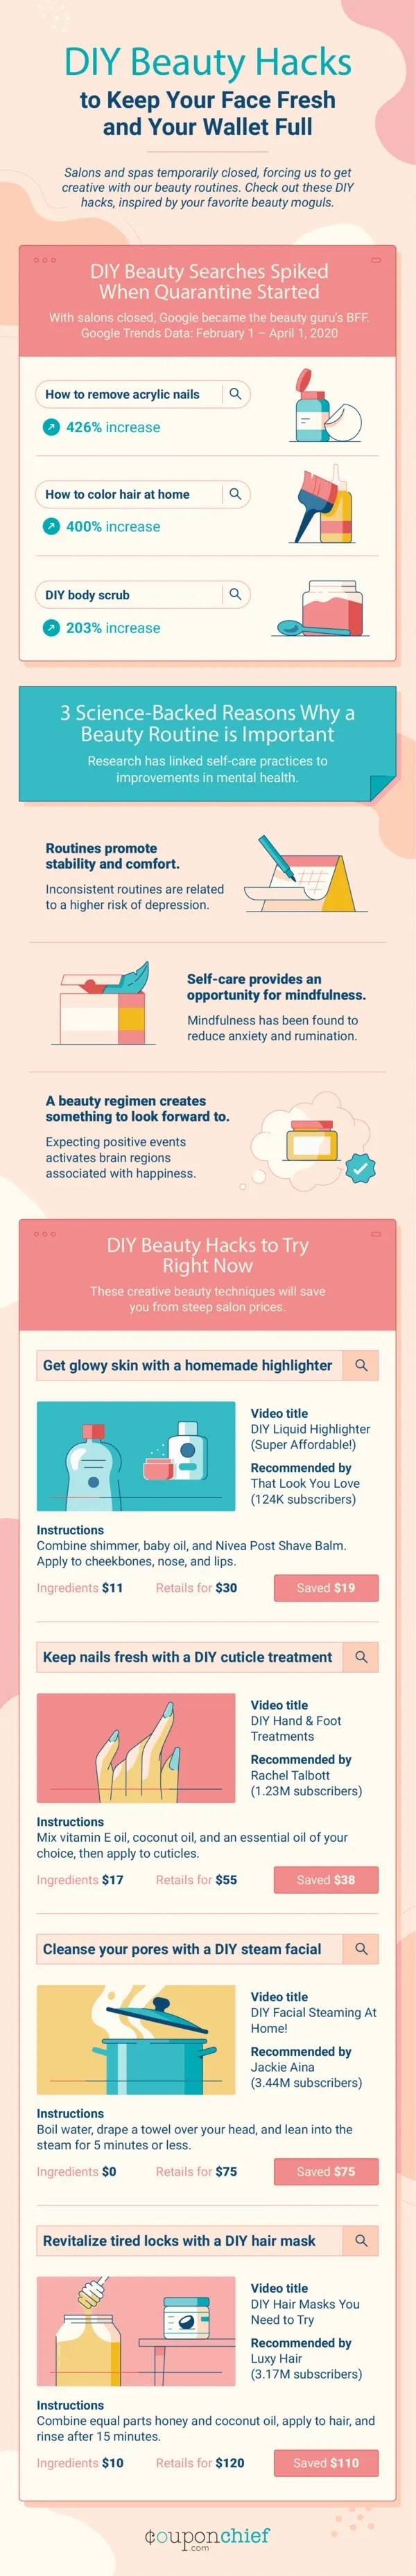 12 Ways to Get Free Makeup Samples # Infographic